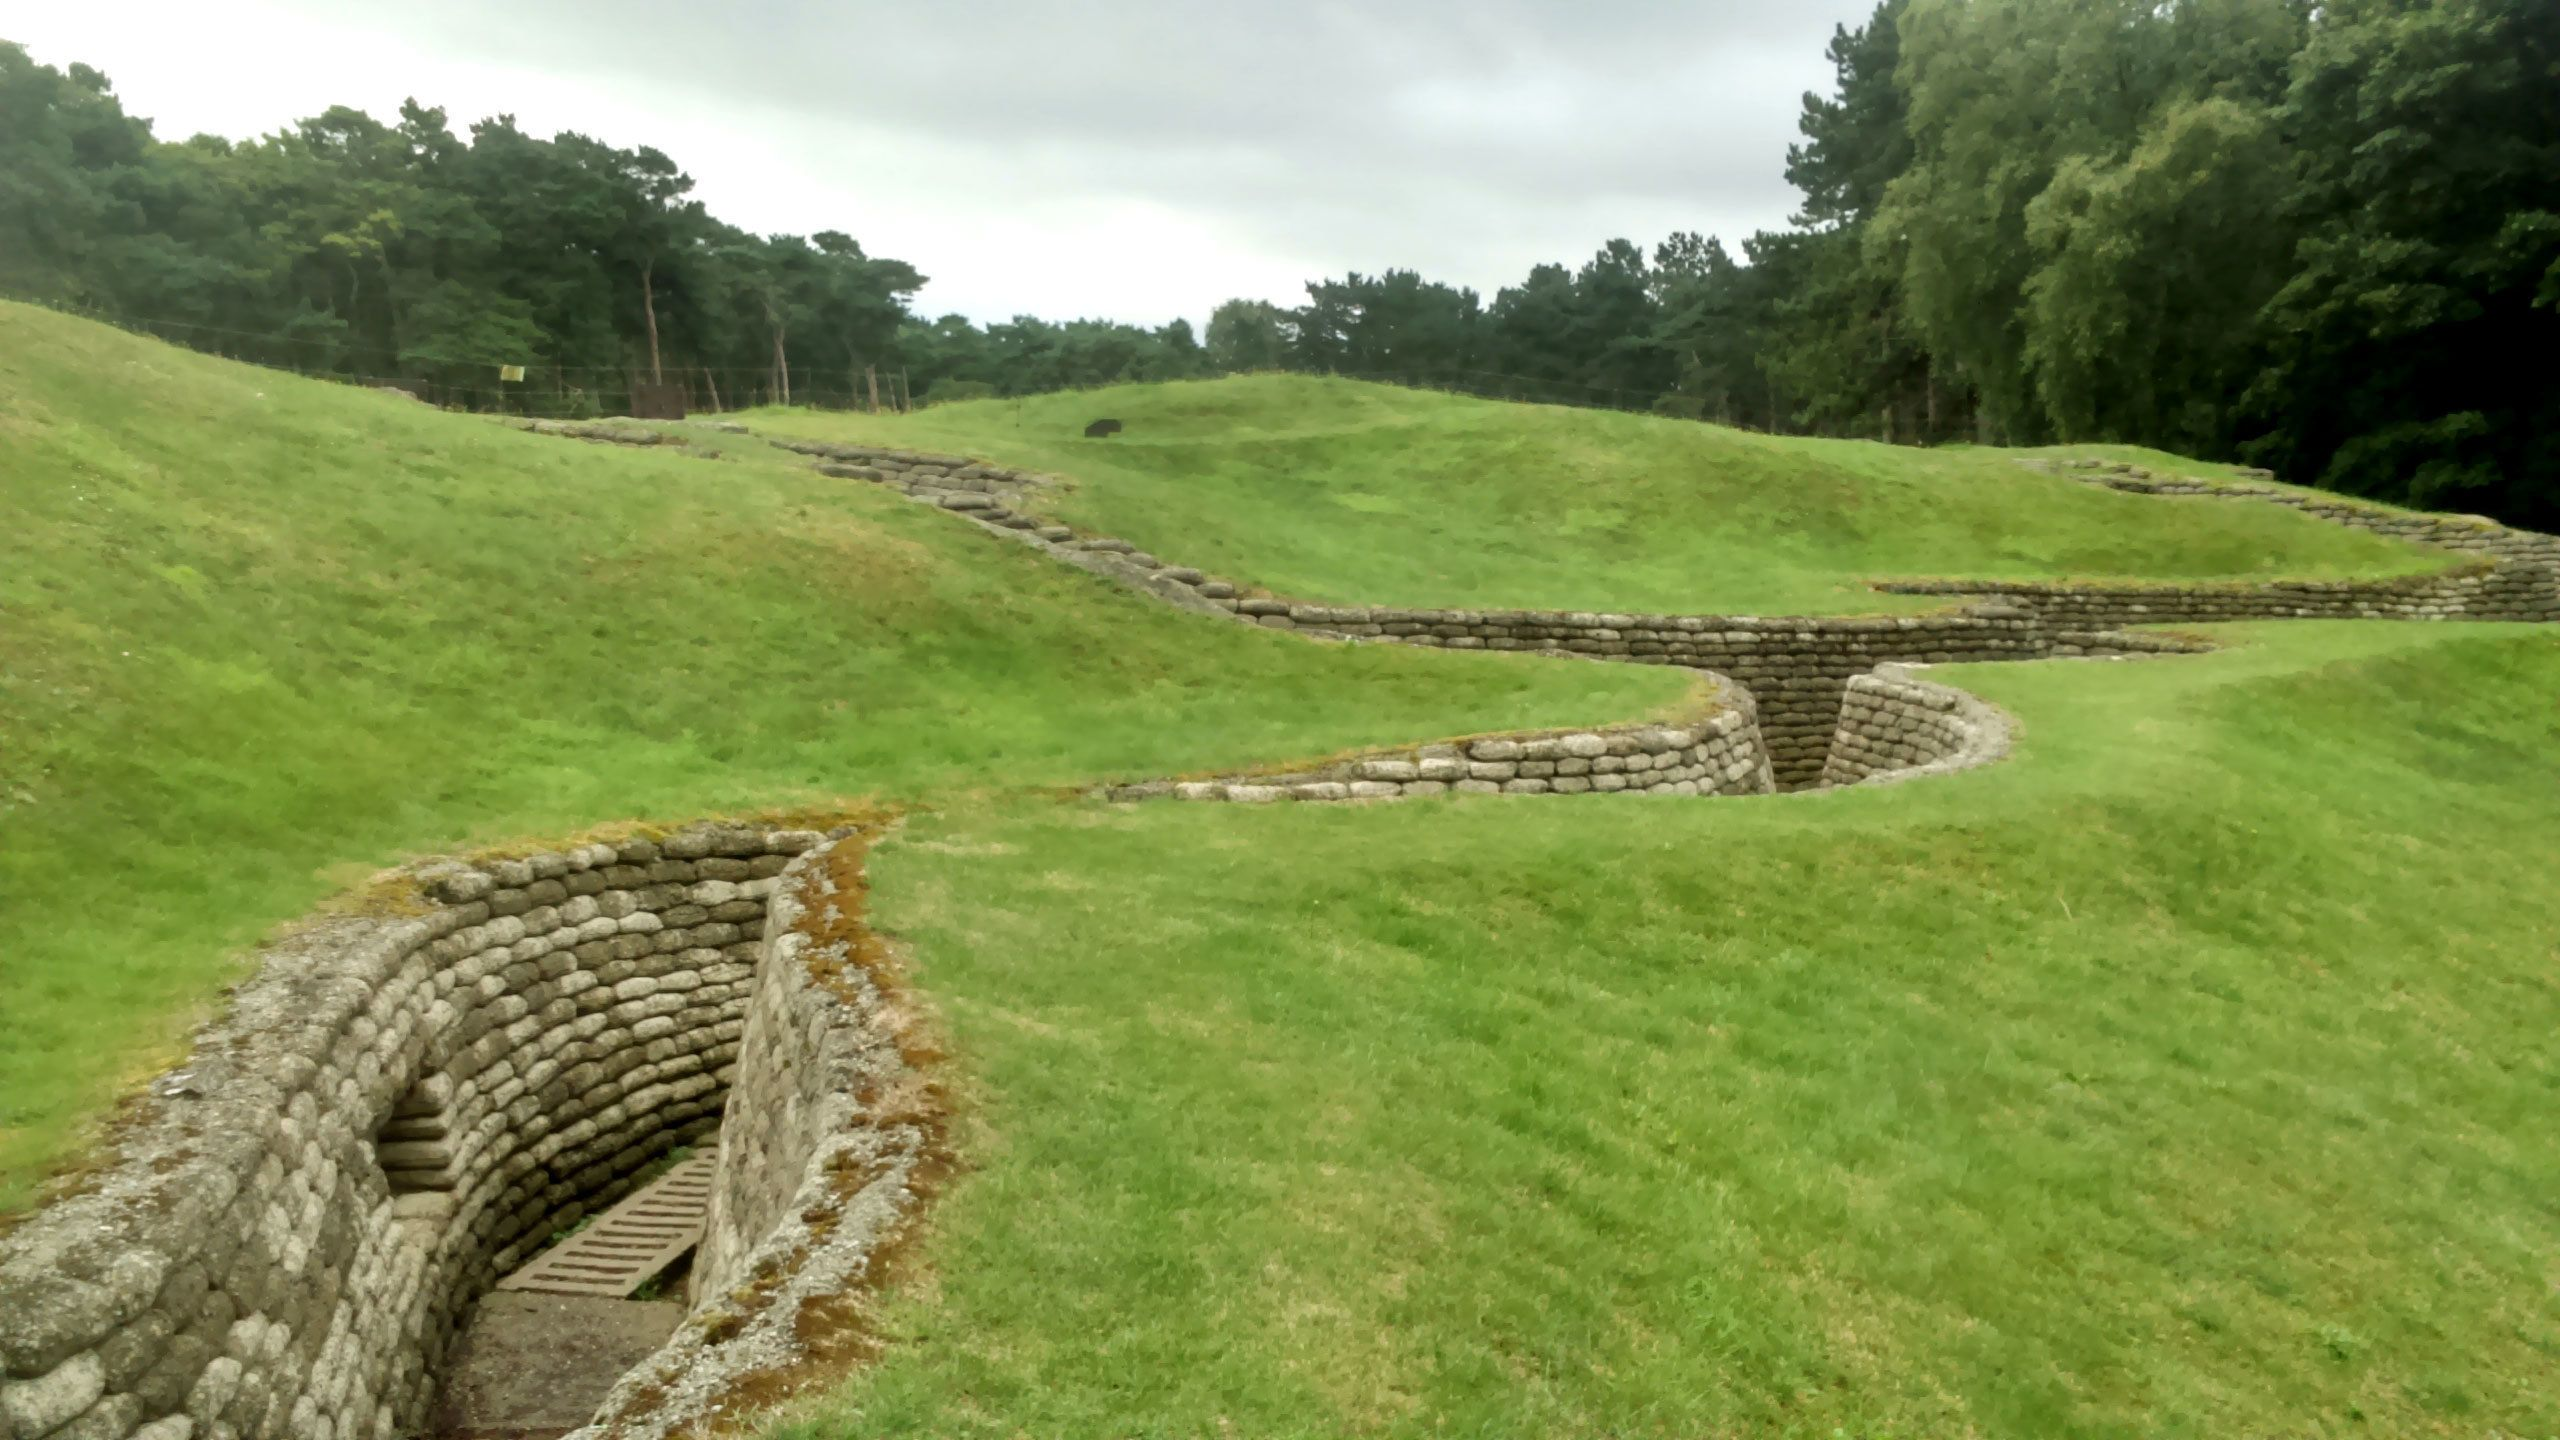 Trenches through a field in Belgium